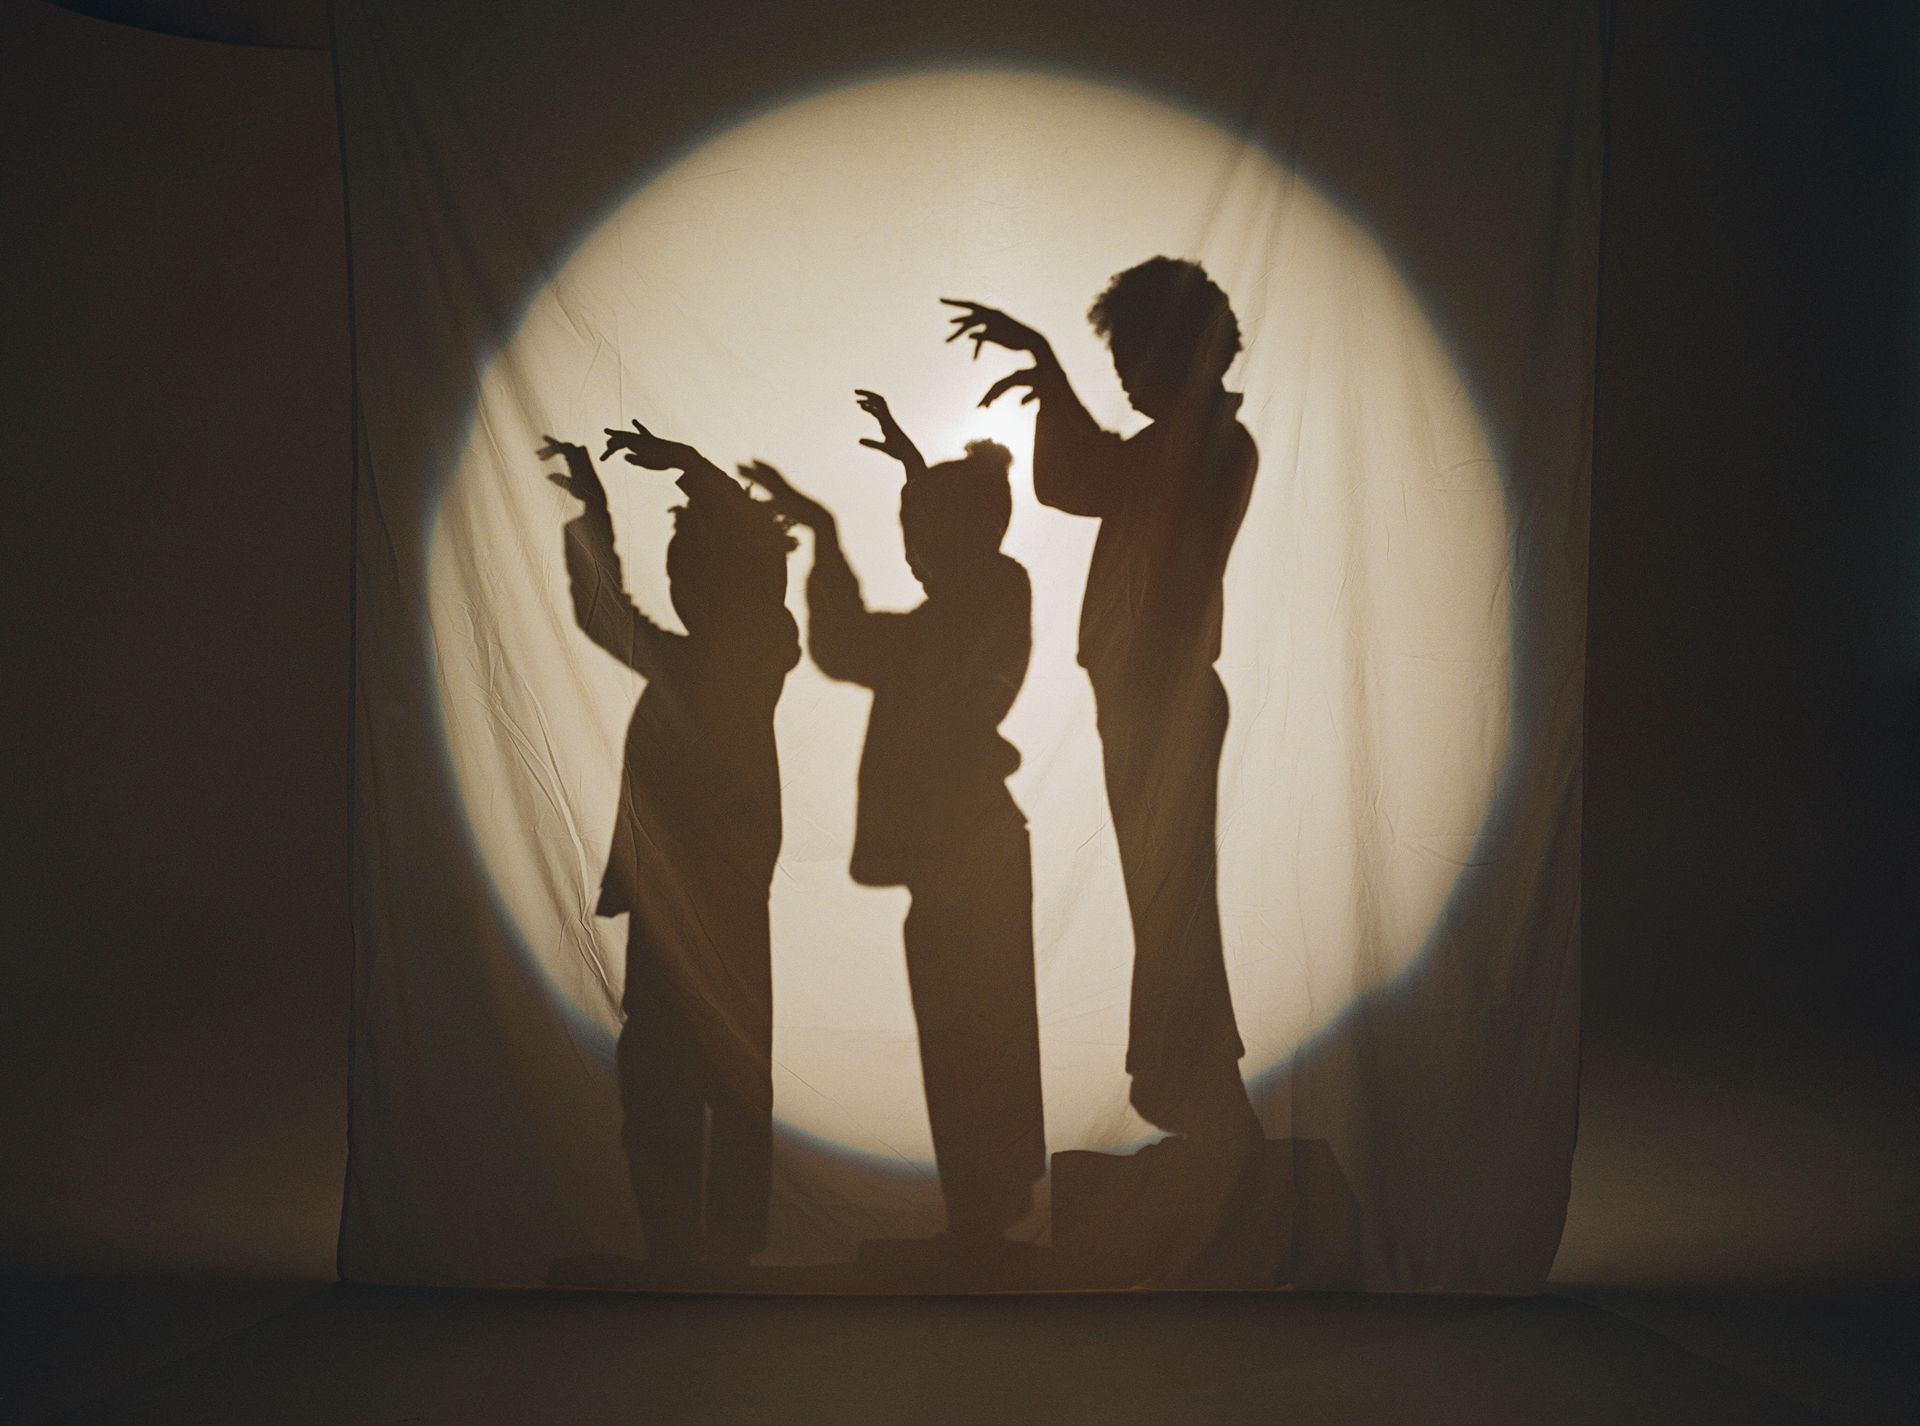 Kids doing shadow shows with their hands. We only see their shadow in a circle of light behind a hung white fabric.